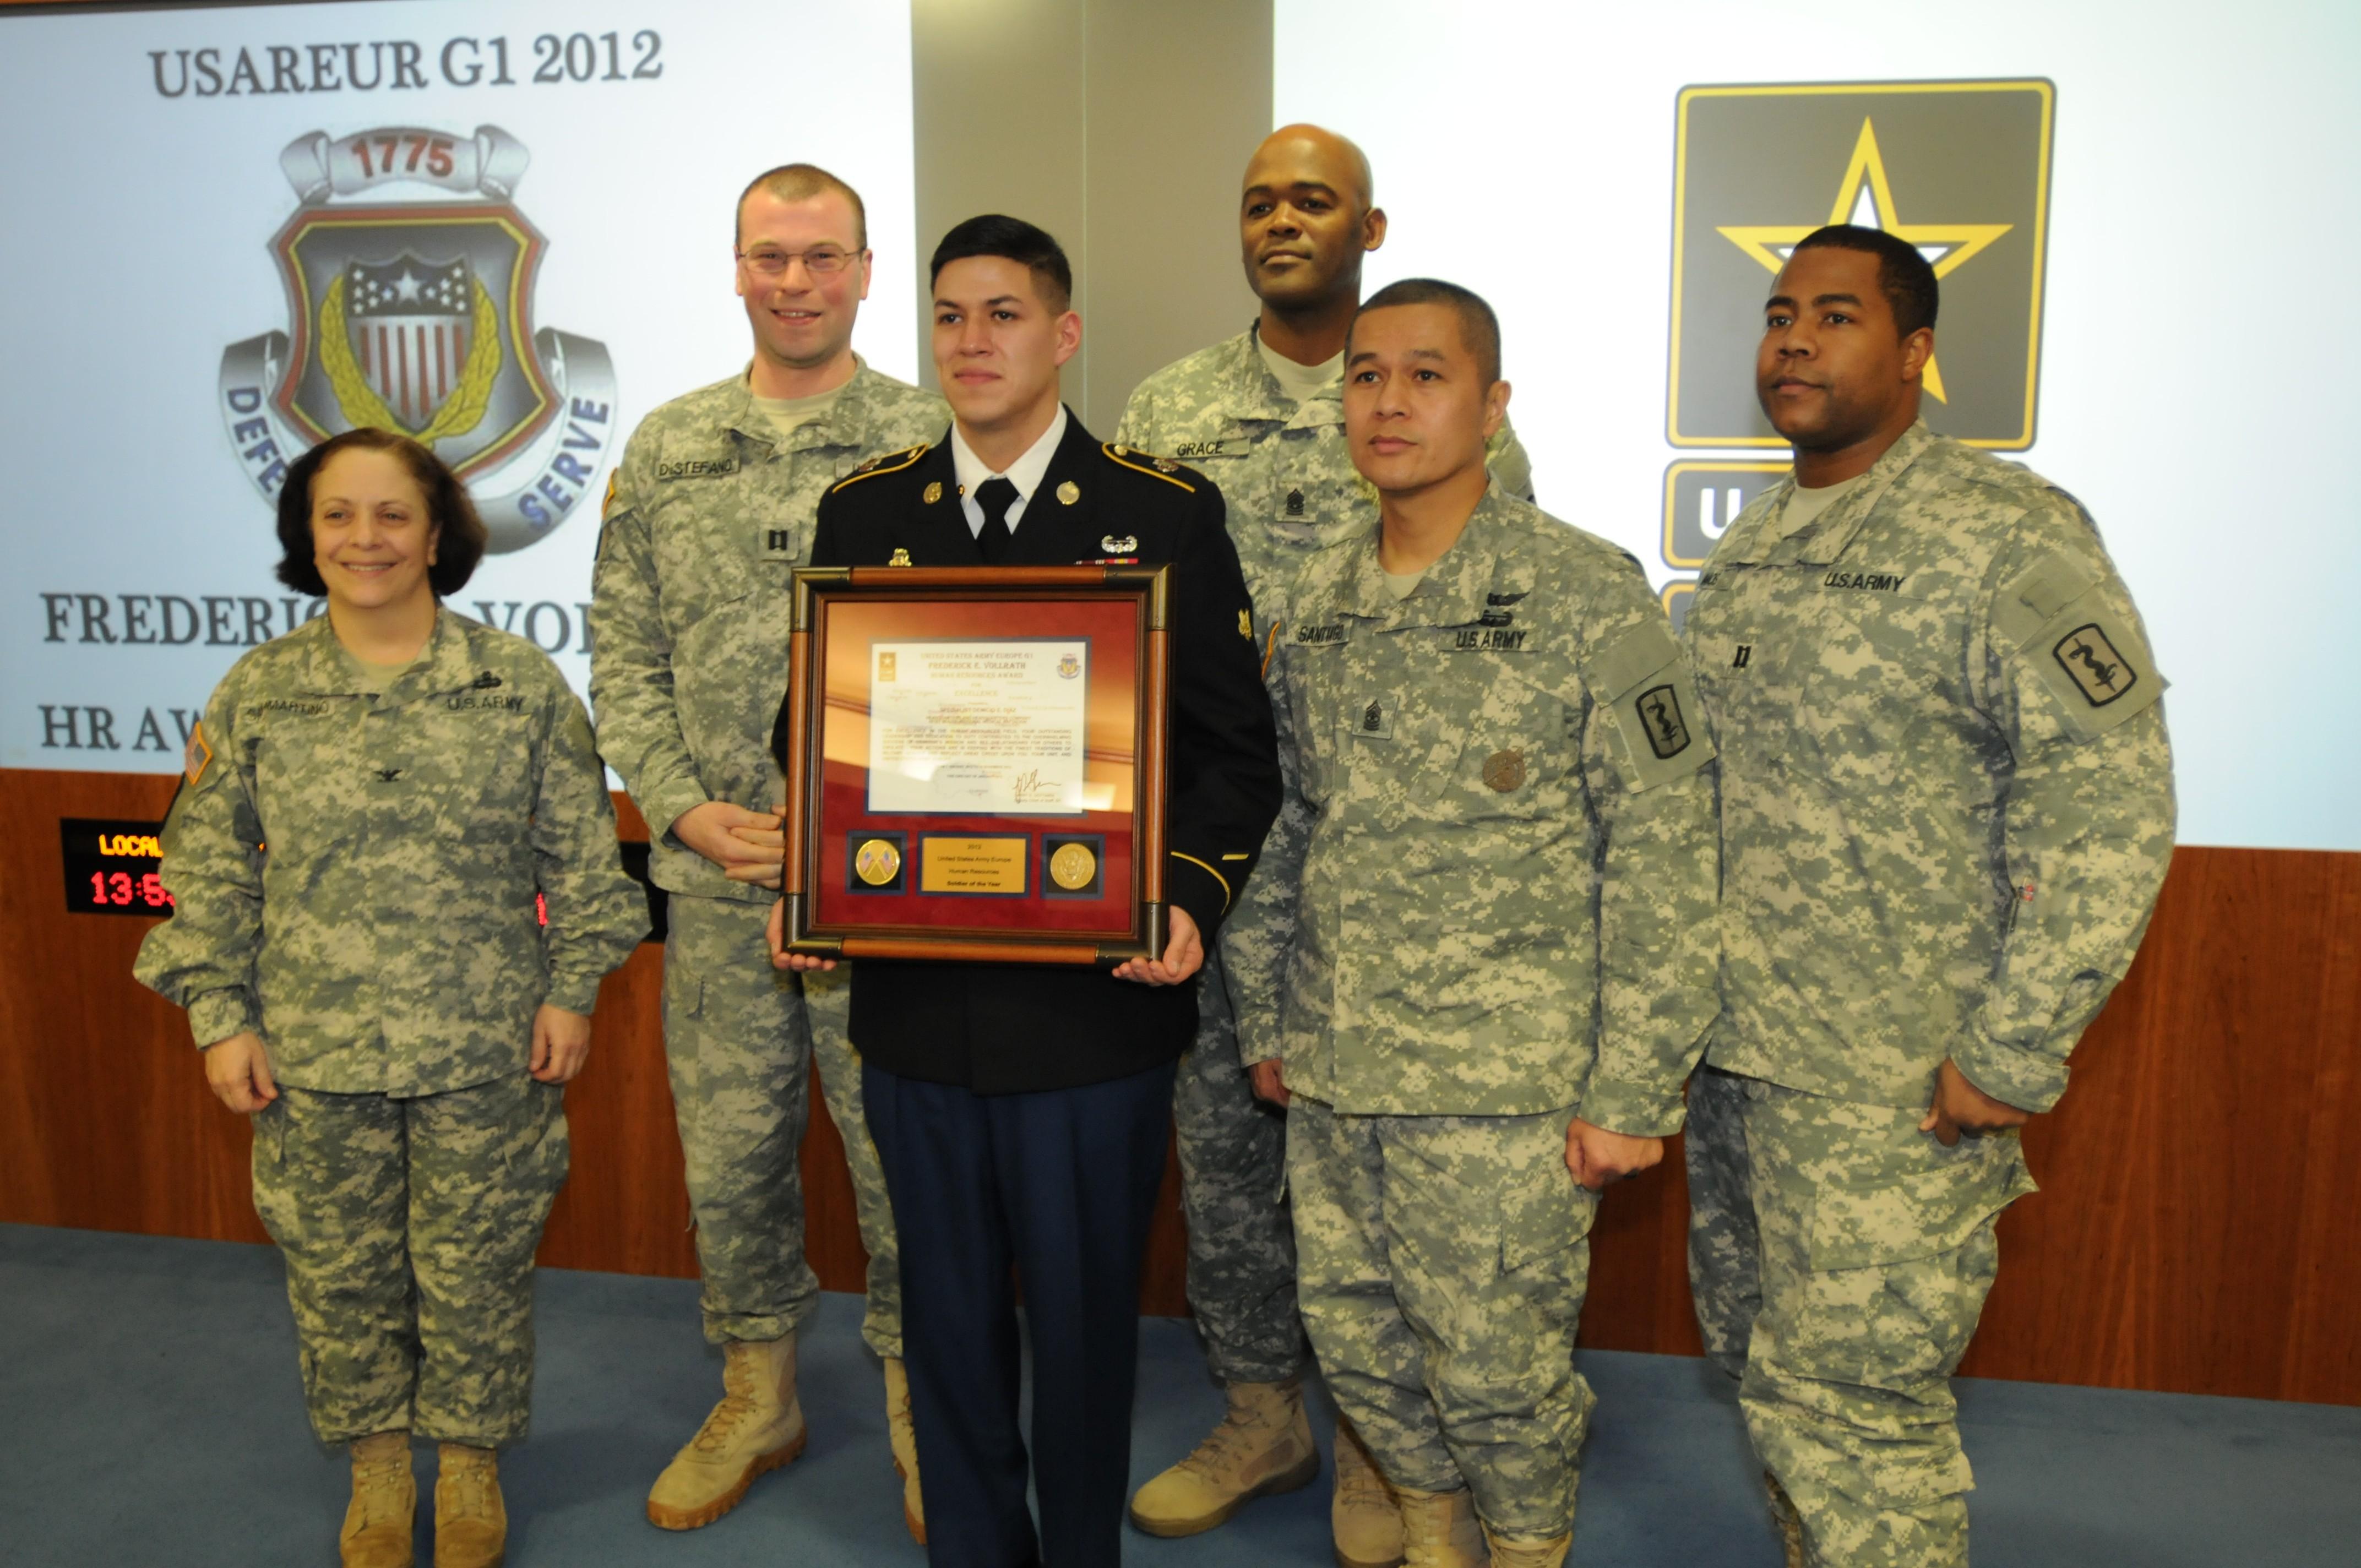 421st Multifunctional Medical Battalion Soldier Earns Usareur Human Resources Award Article The United States Army